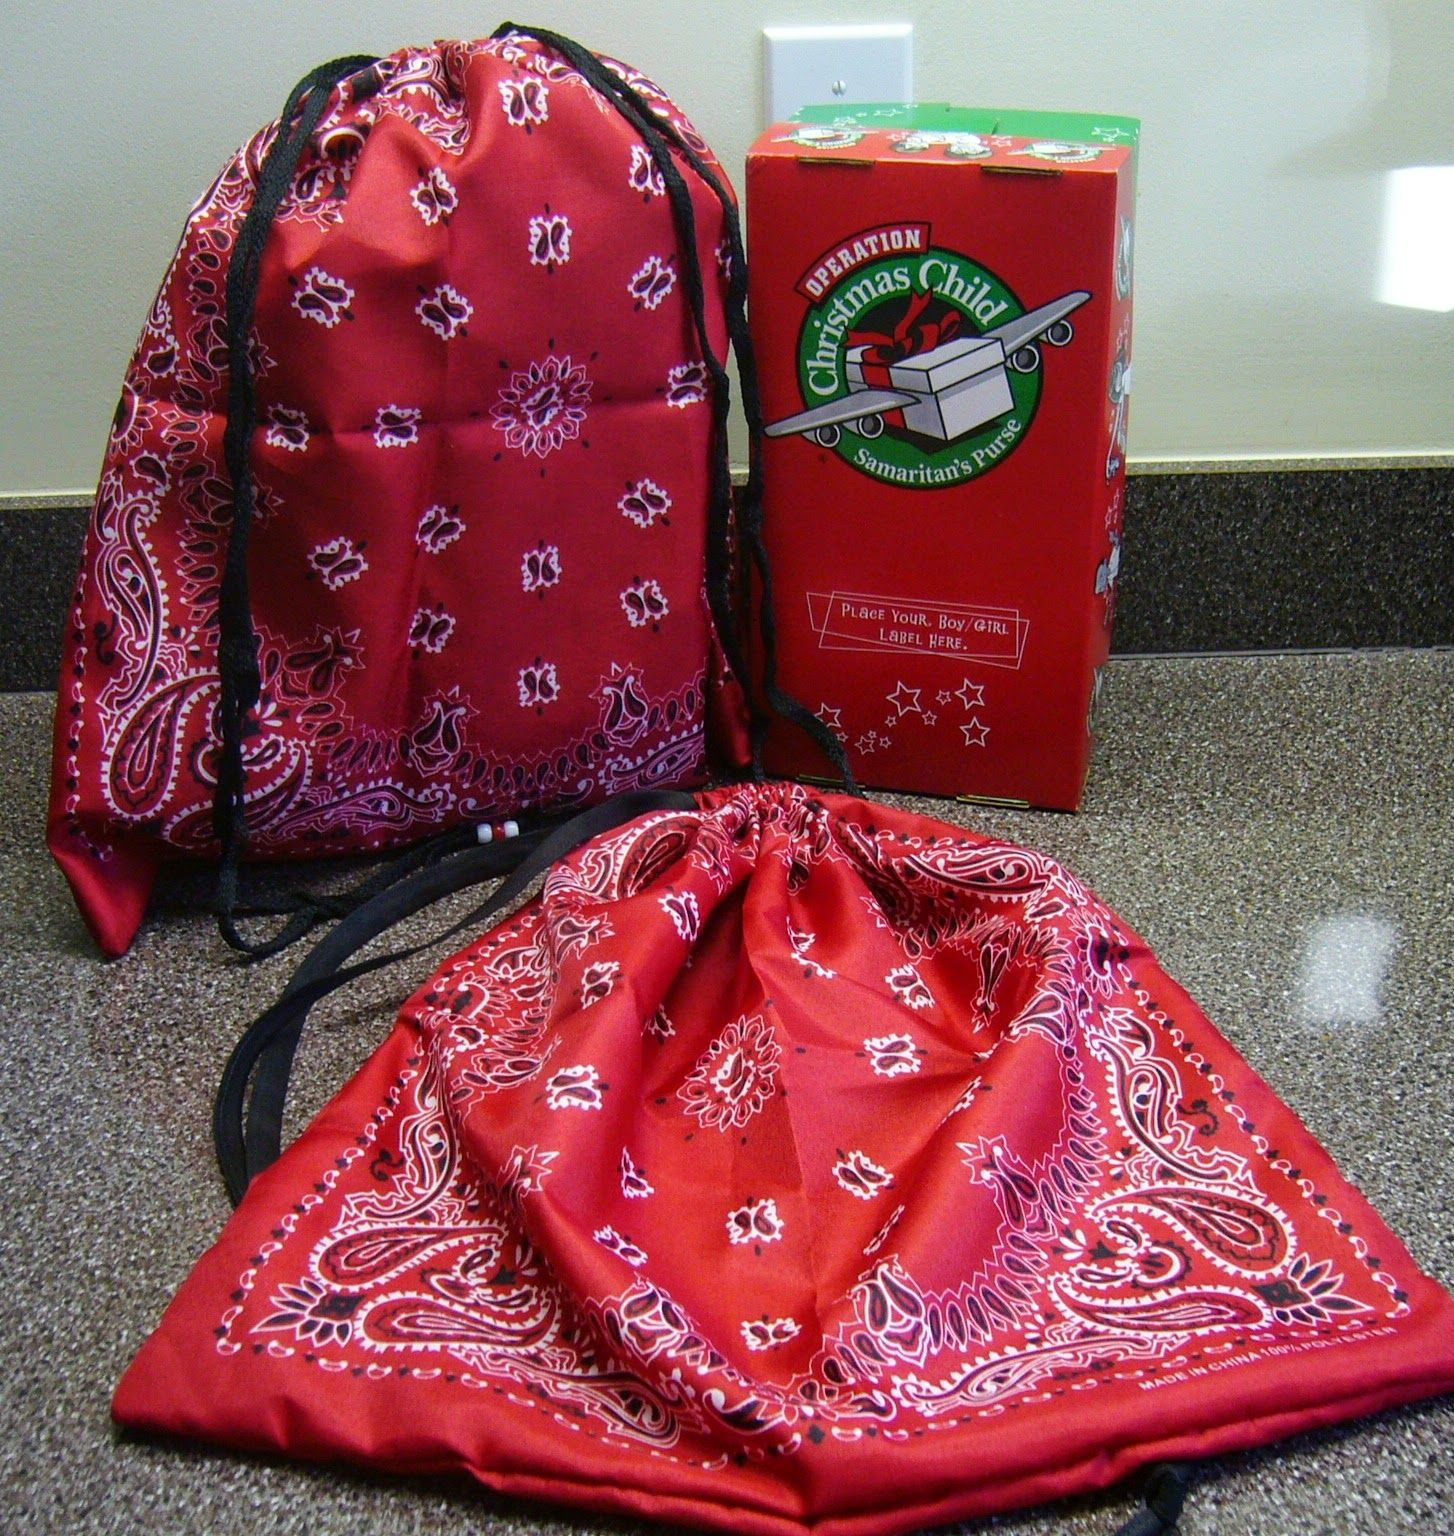 30 Shoe Box Craft Ideas: 3-Step, Five Minute Drawstring Tote Bag For Operation